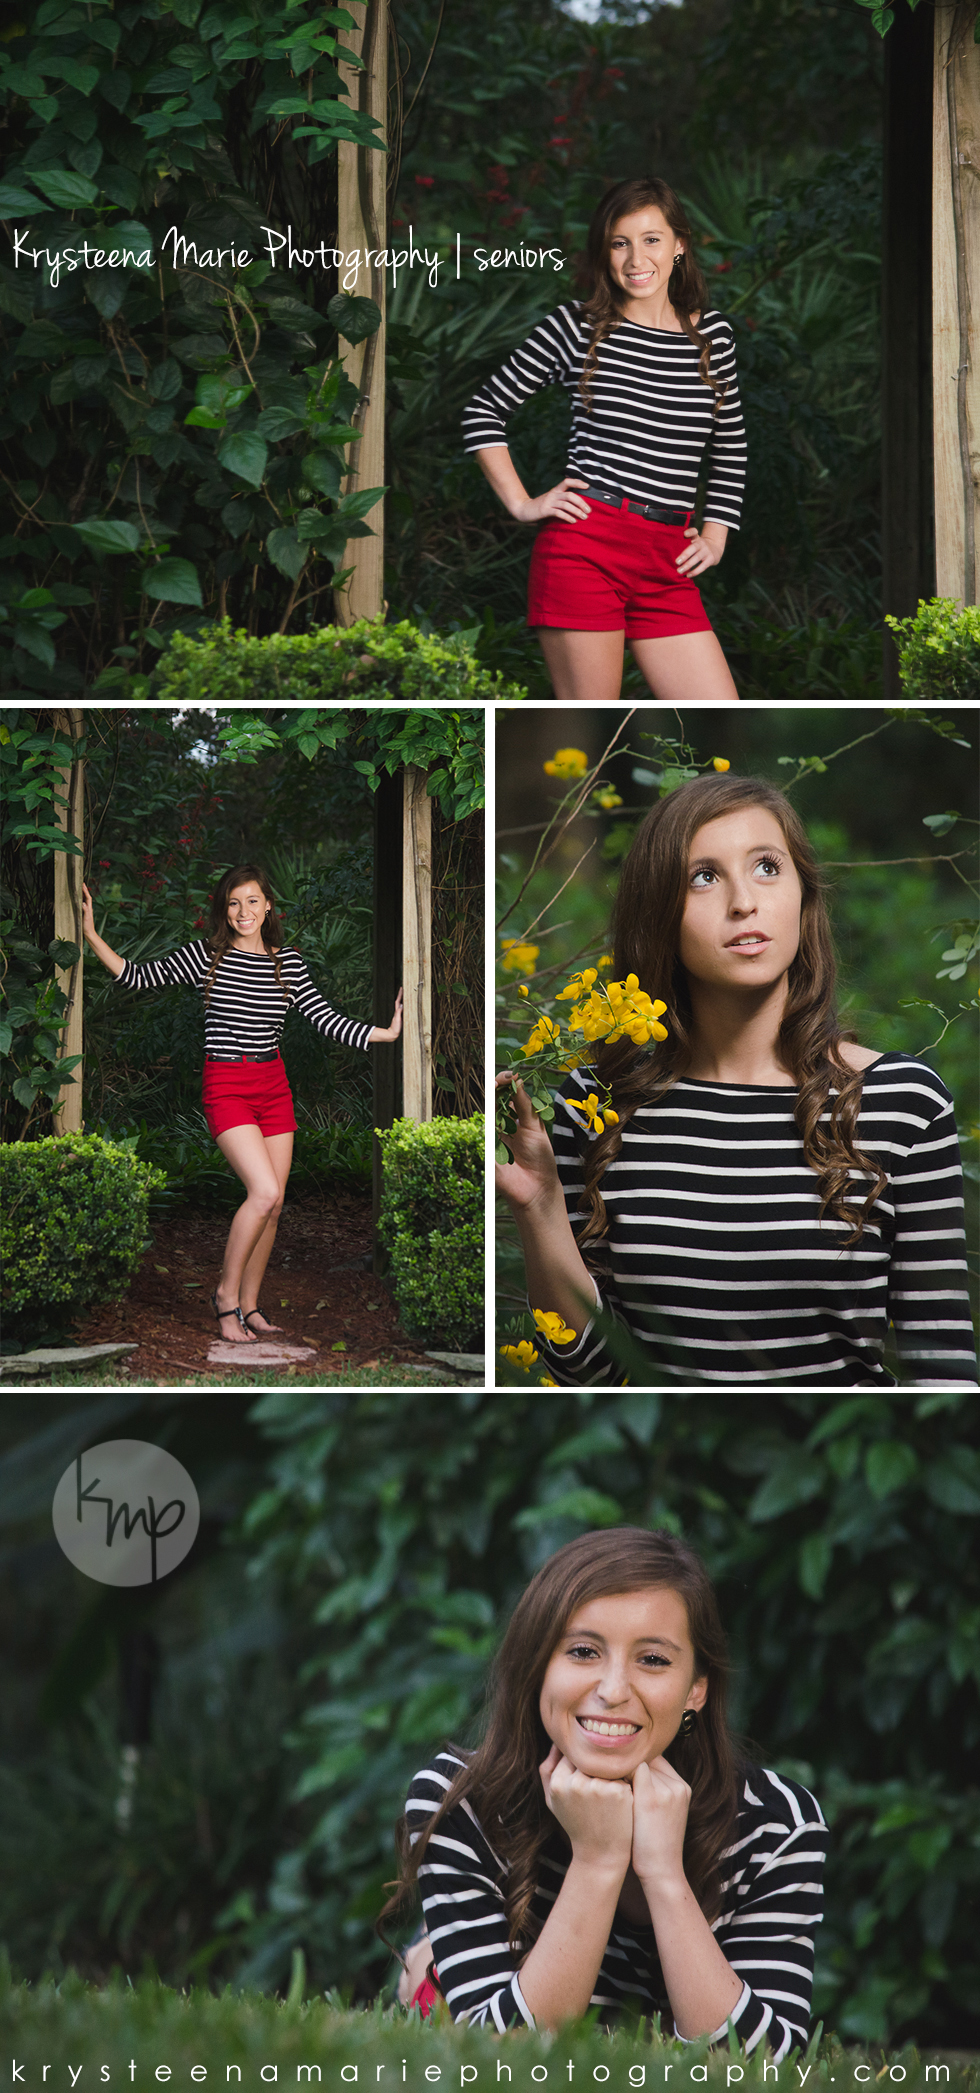 Tampa Senior Photographer | Krysteena Marie Photography